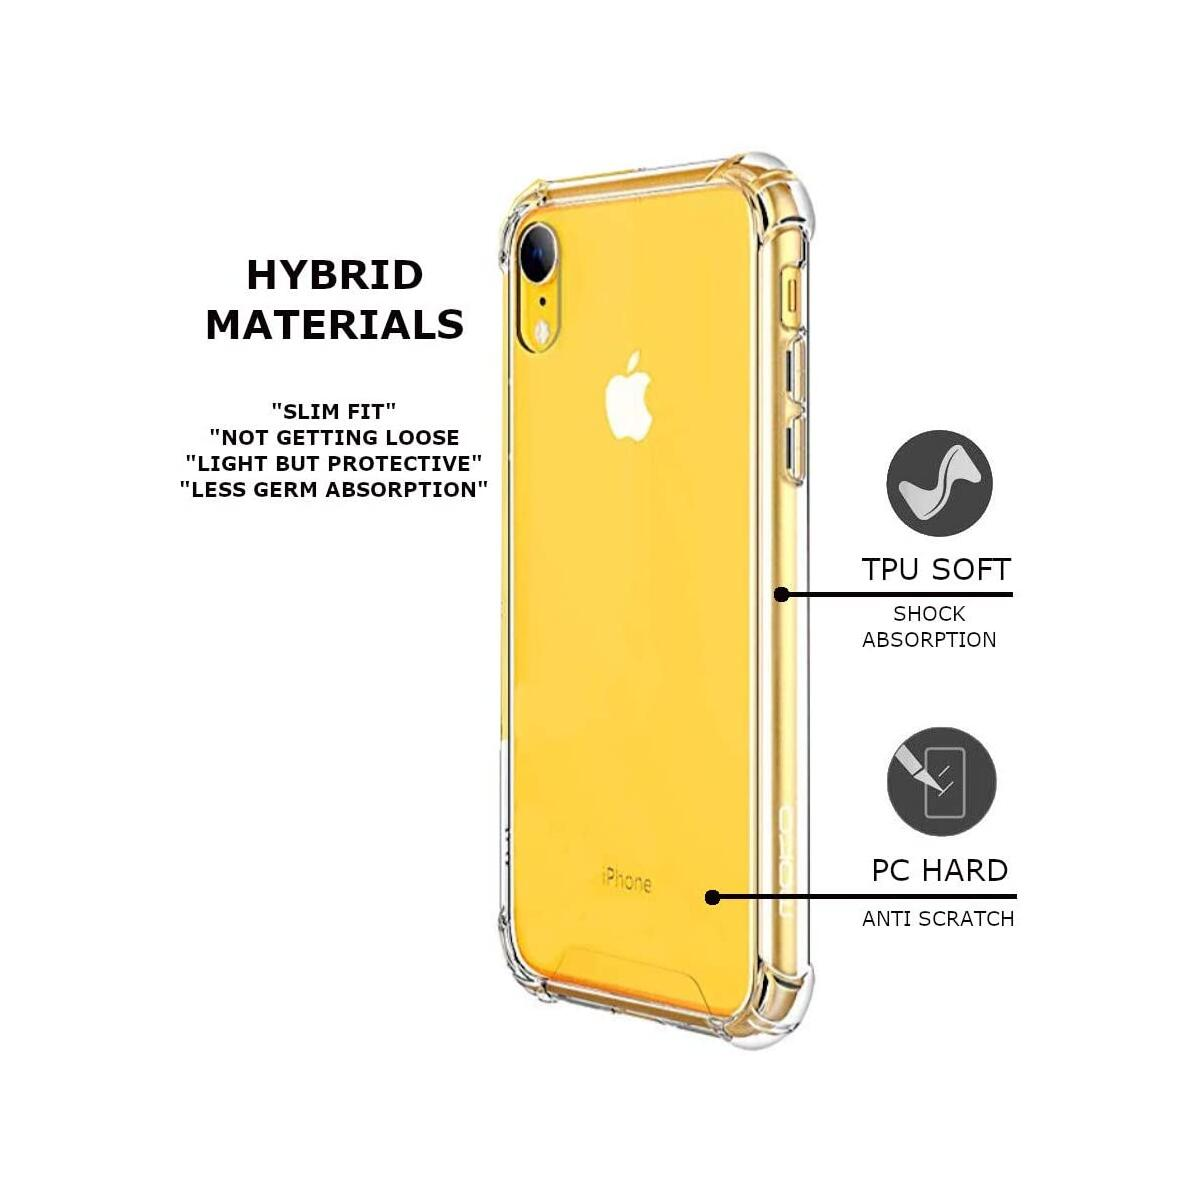 iPhone XR Clear Case, Transparent XR Cover, Shock Absorptive, Camera & Screen Protector, Reinforced Drop Protection, Hard PC Back + Soft TPU Frame Compatible with The iPhone XR 6.1